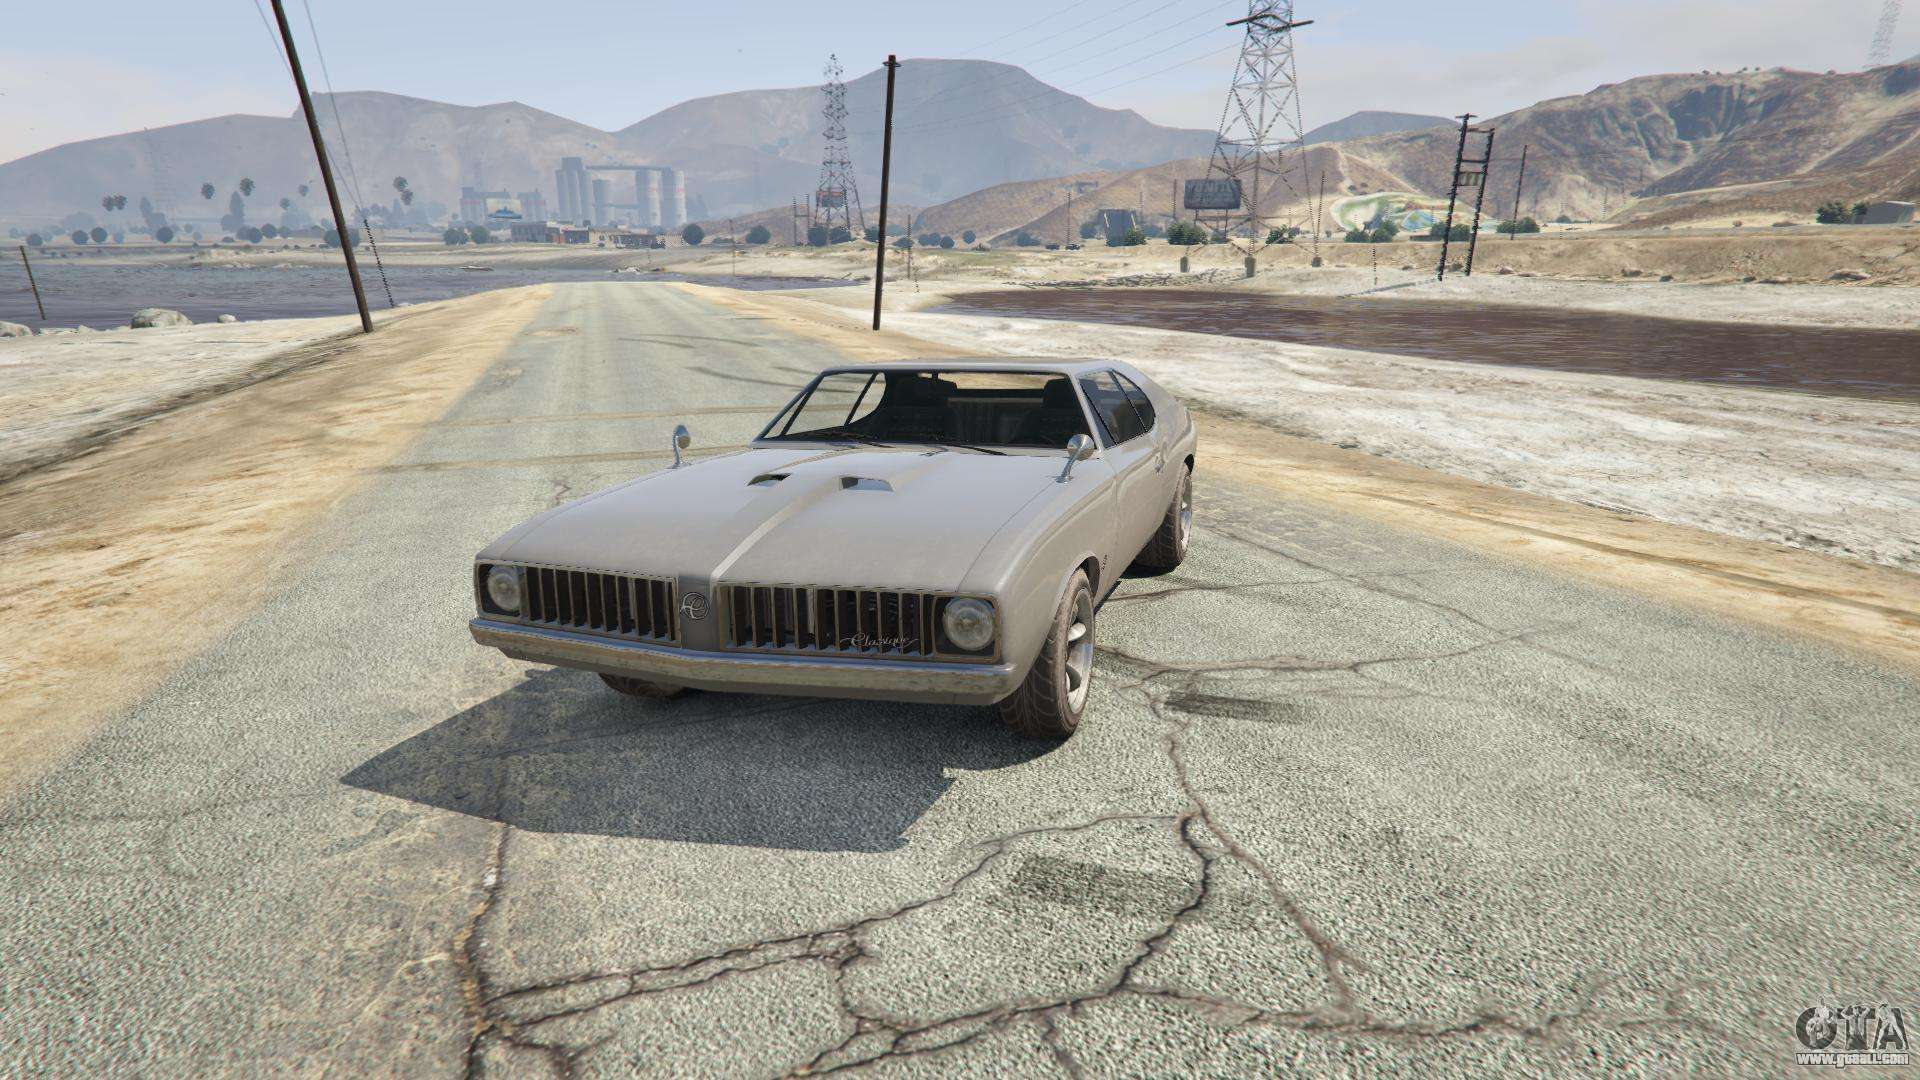 Stallion from GTA 5 - front view